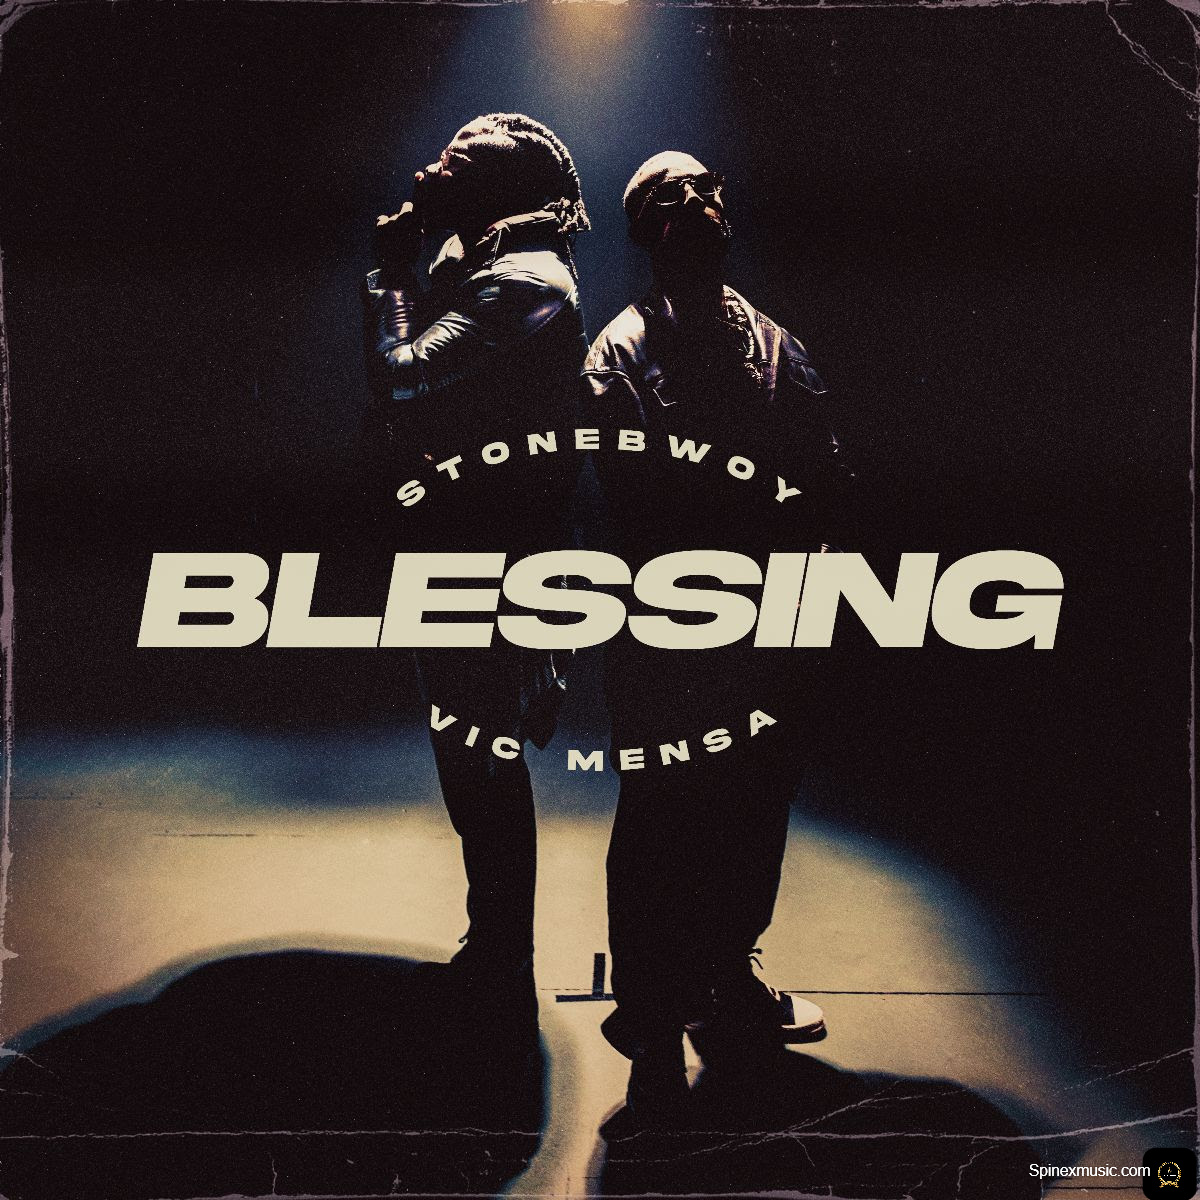 Stonebwoy Featuring Vic Mensa - Blessing